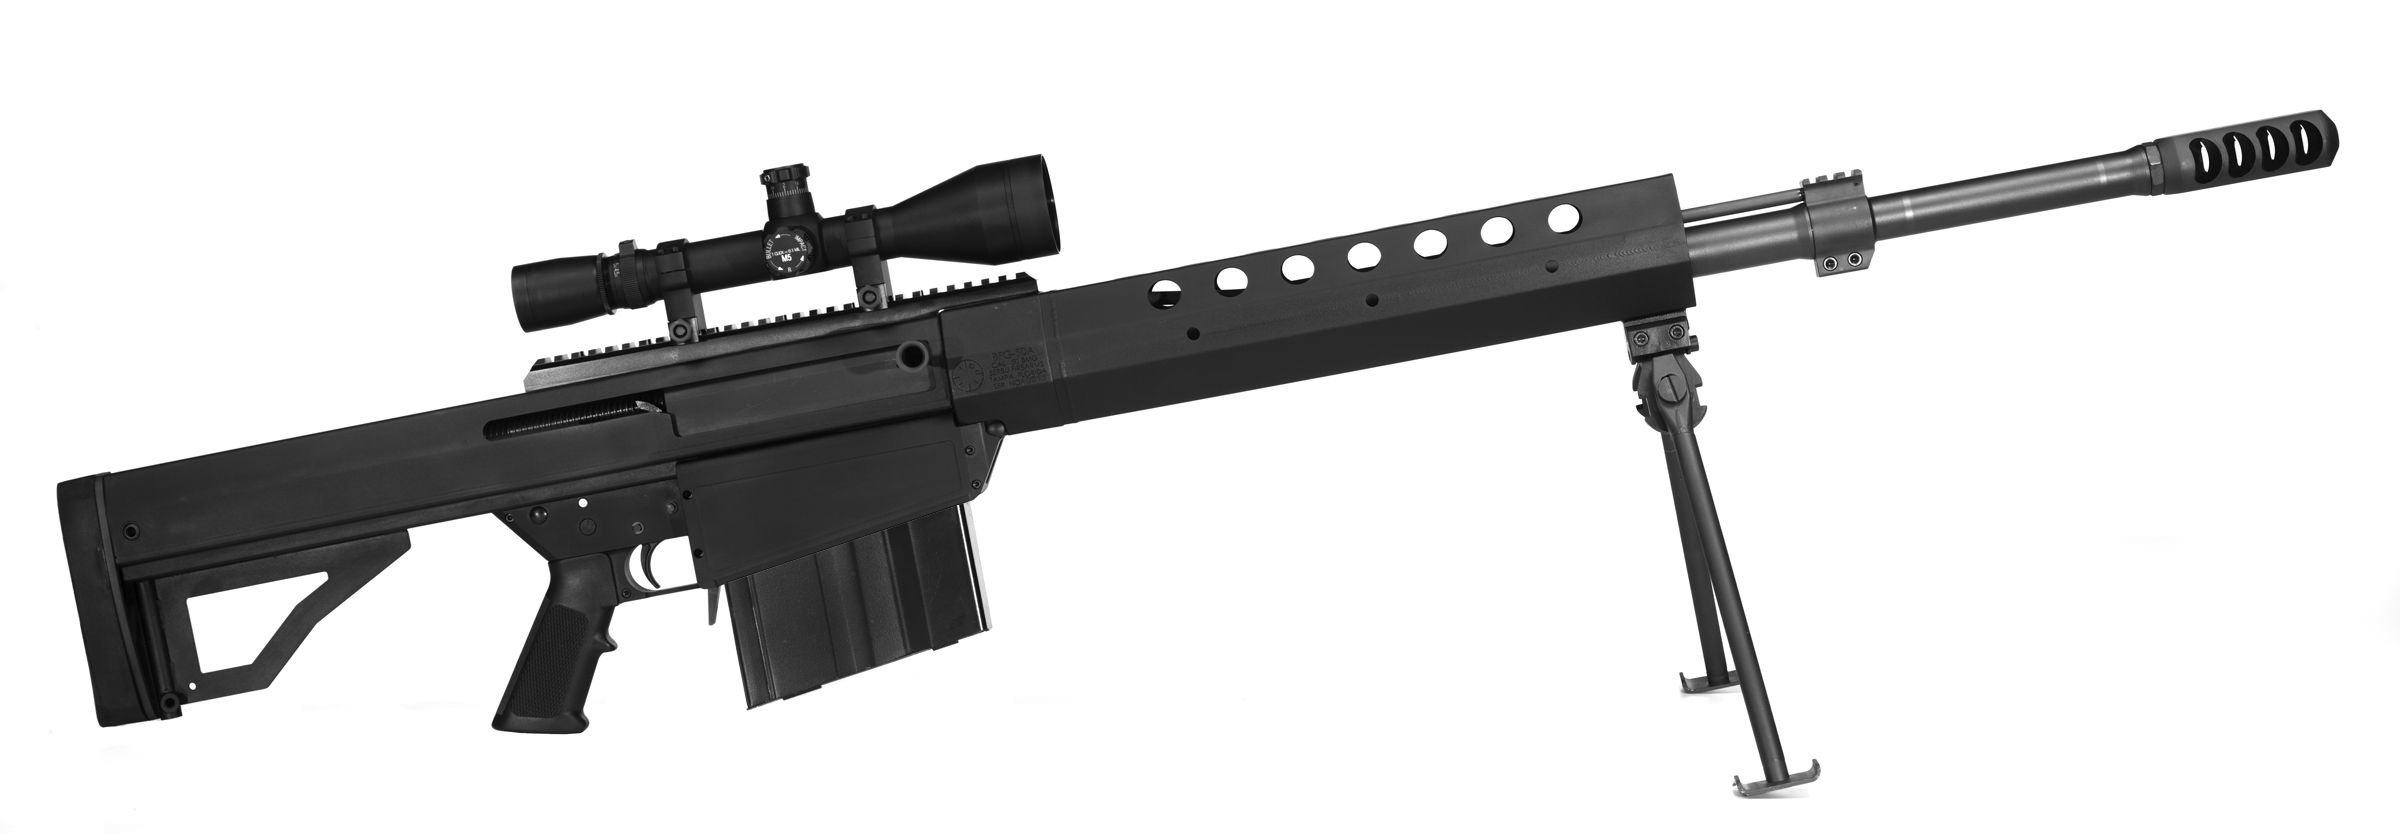 BFG-50A is Lighter, Better Built, More Accurate and Costs Thousands